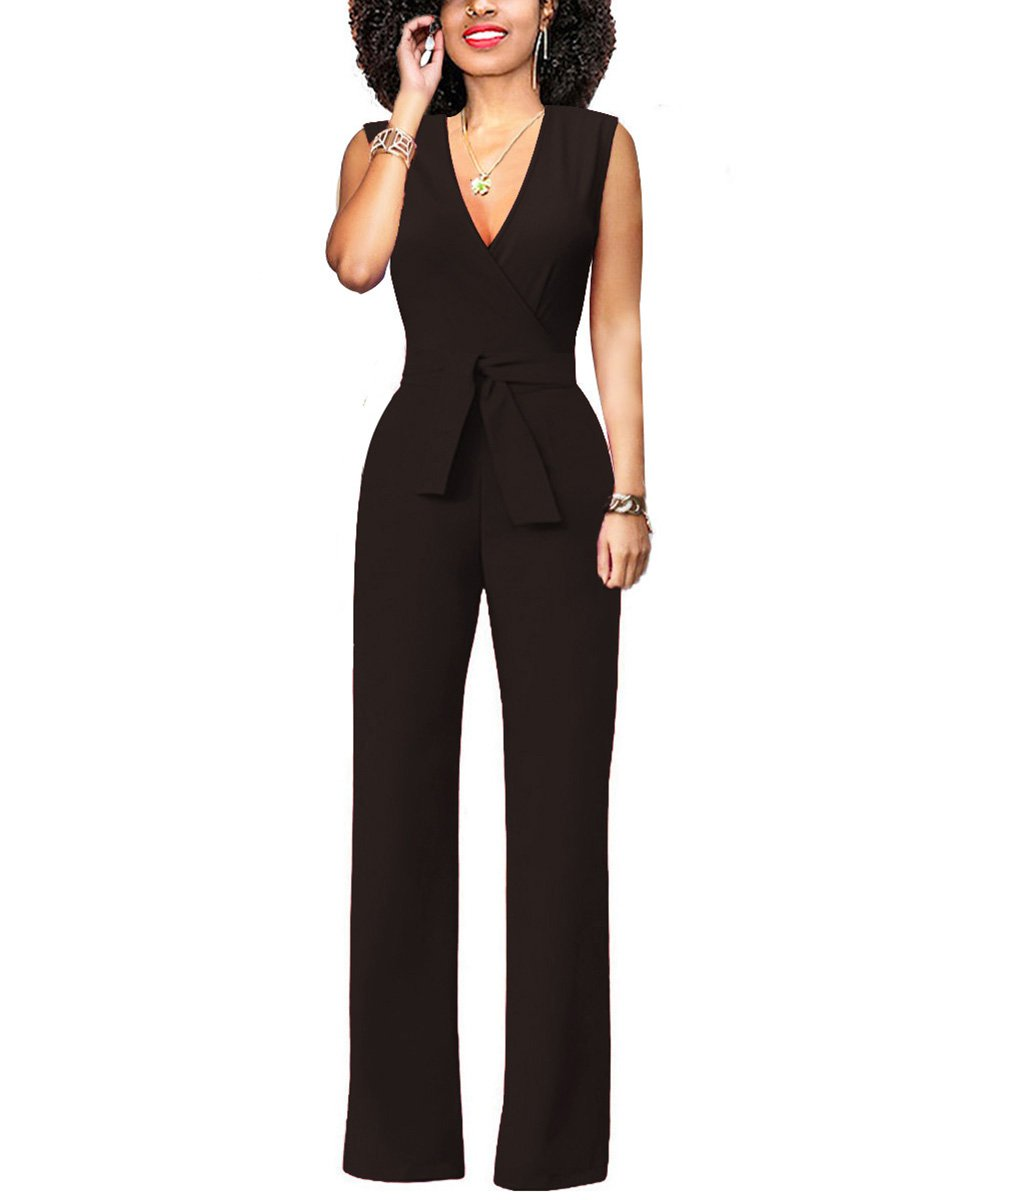 MissLover Women's Sexy Sleeveless Wrap Top Wide Leg Long Pants Jumpsuit Romper with Belt Black S